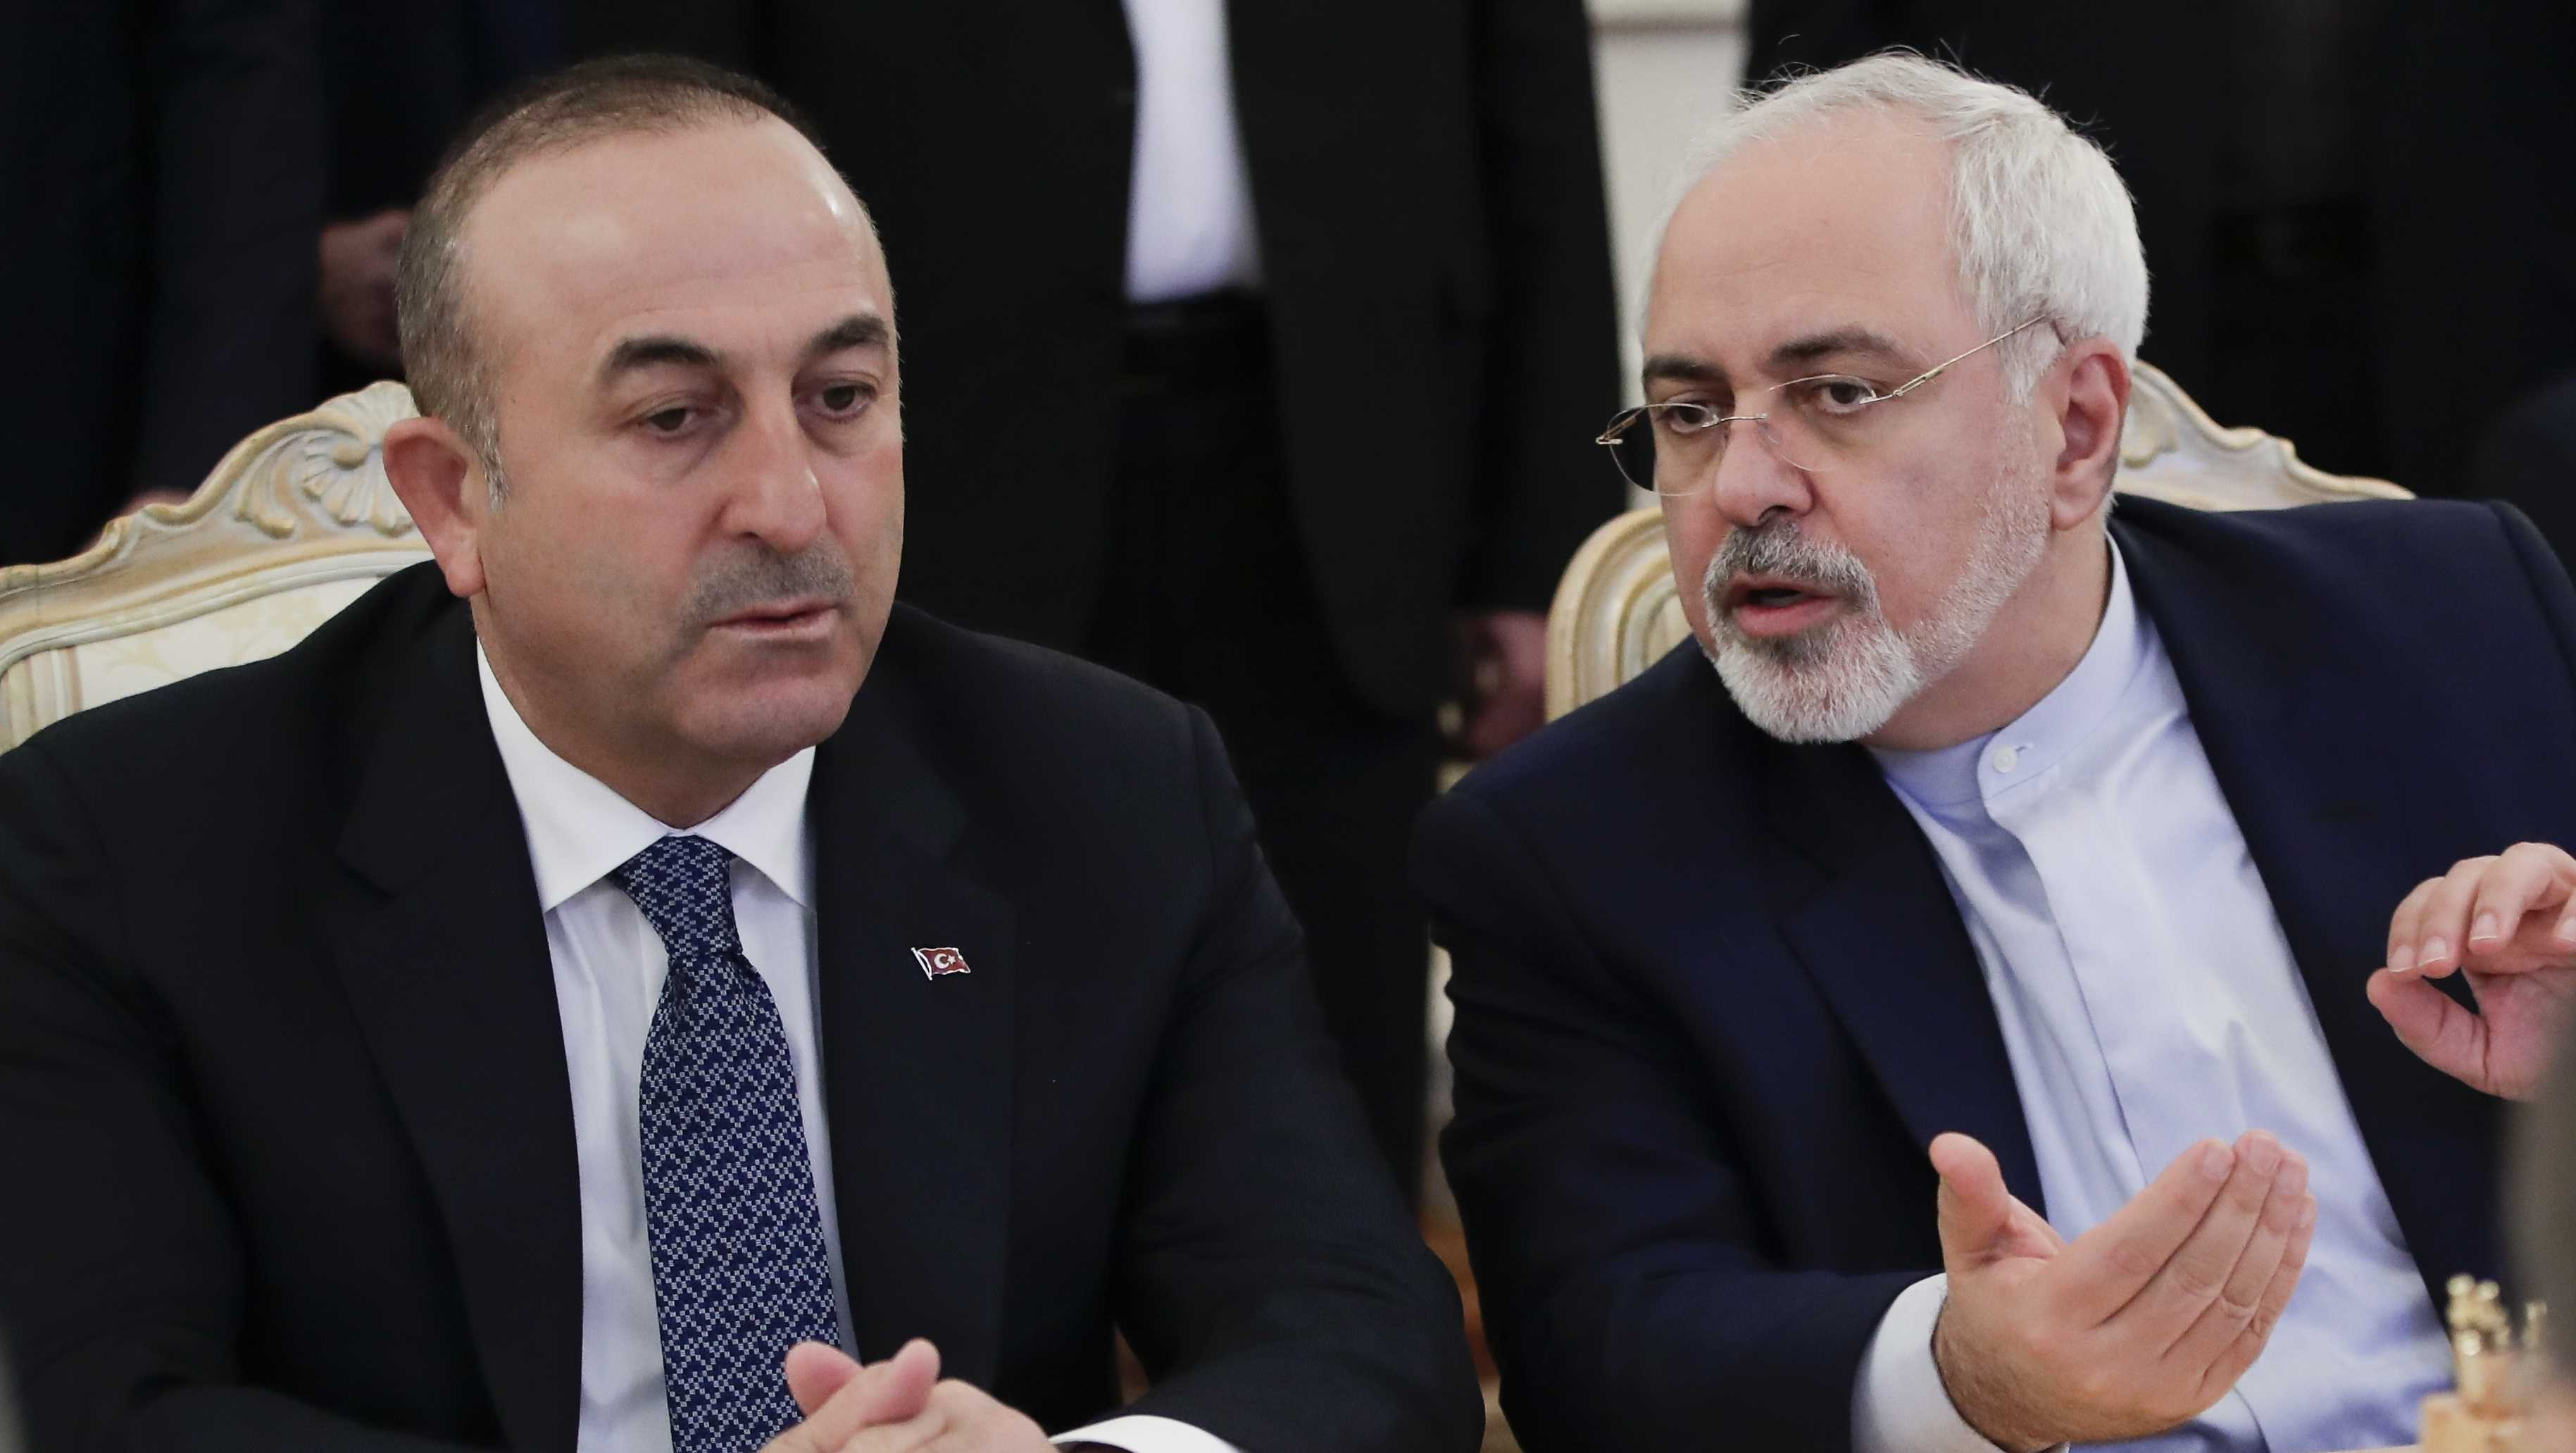 Turkey's Foreign Minister Mevlut Cavusoglu, left, and Iranian Foreign Minister Mohammad Javad Zarif talk to each other during their talks with Russian Foreign Minister Sergey Lavrov in Moscow, Russia, Tuesday, Dec. 20, 2016.